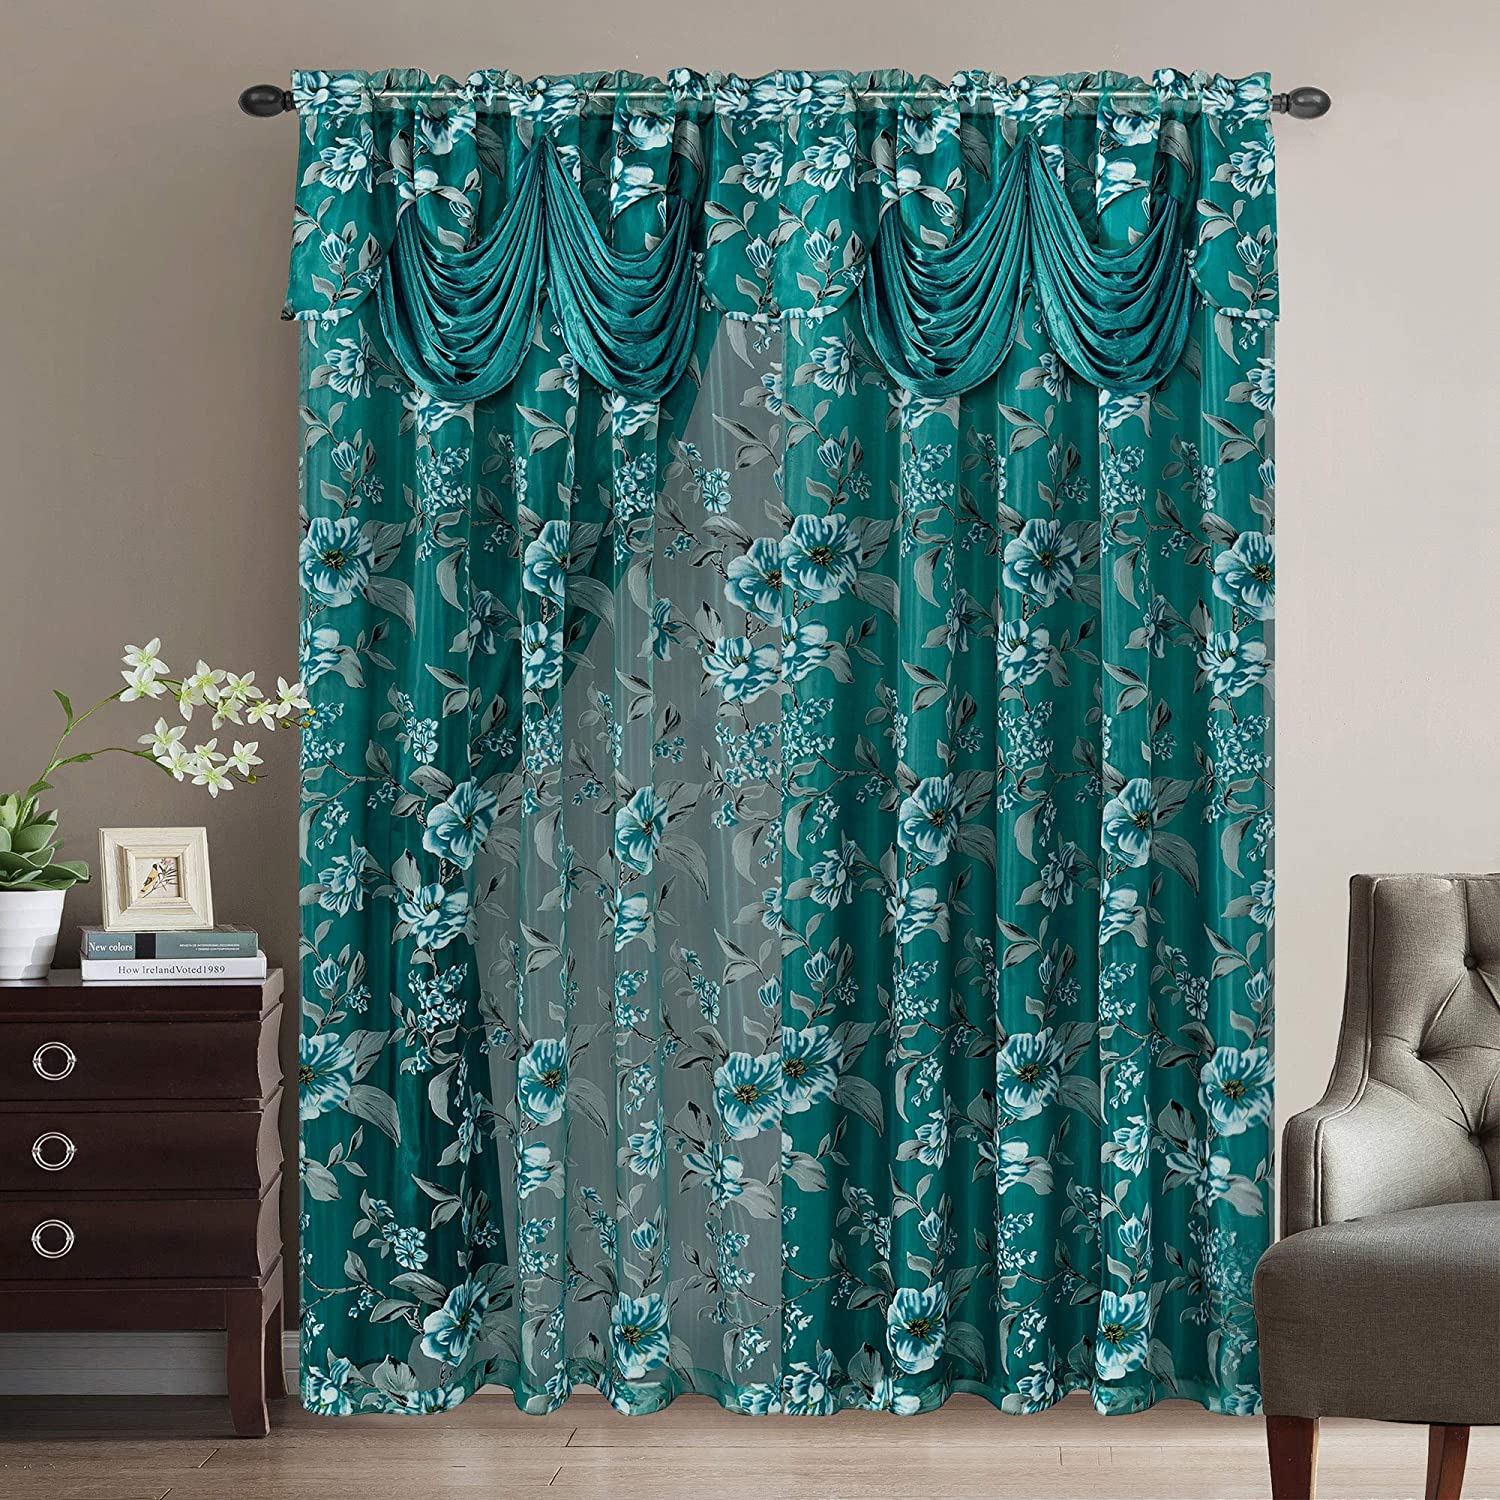 Roman Max 42% OFF Romance. Burnt-Out Printed Over item handling Organza Curtain Dr Panel Window